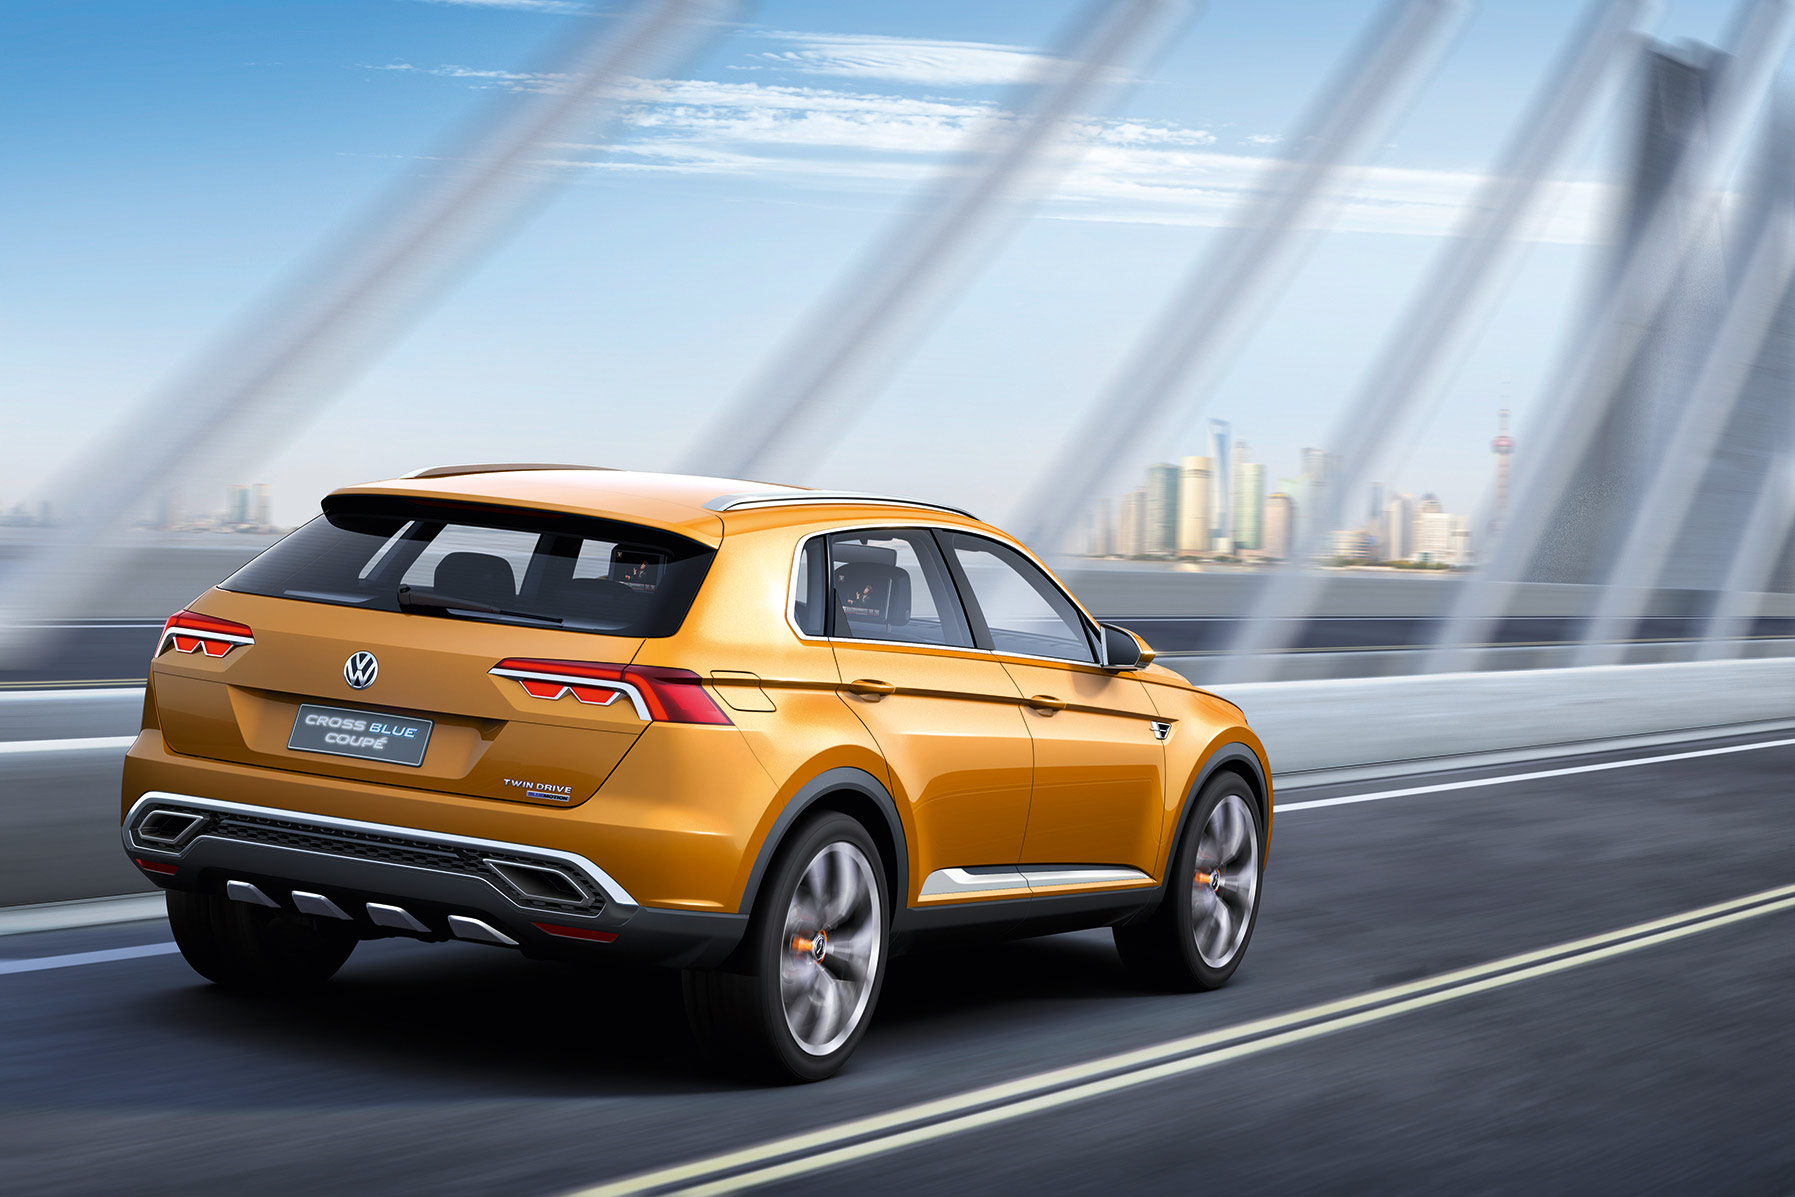 volkswagen-crossblue-coupe-concept-031